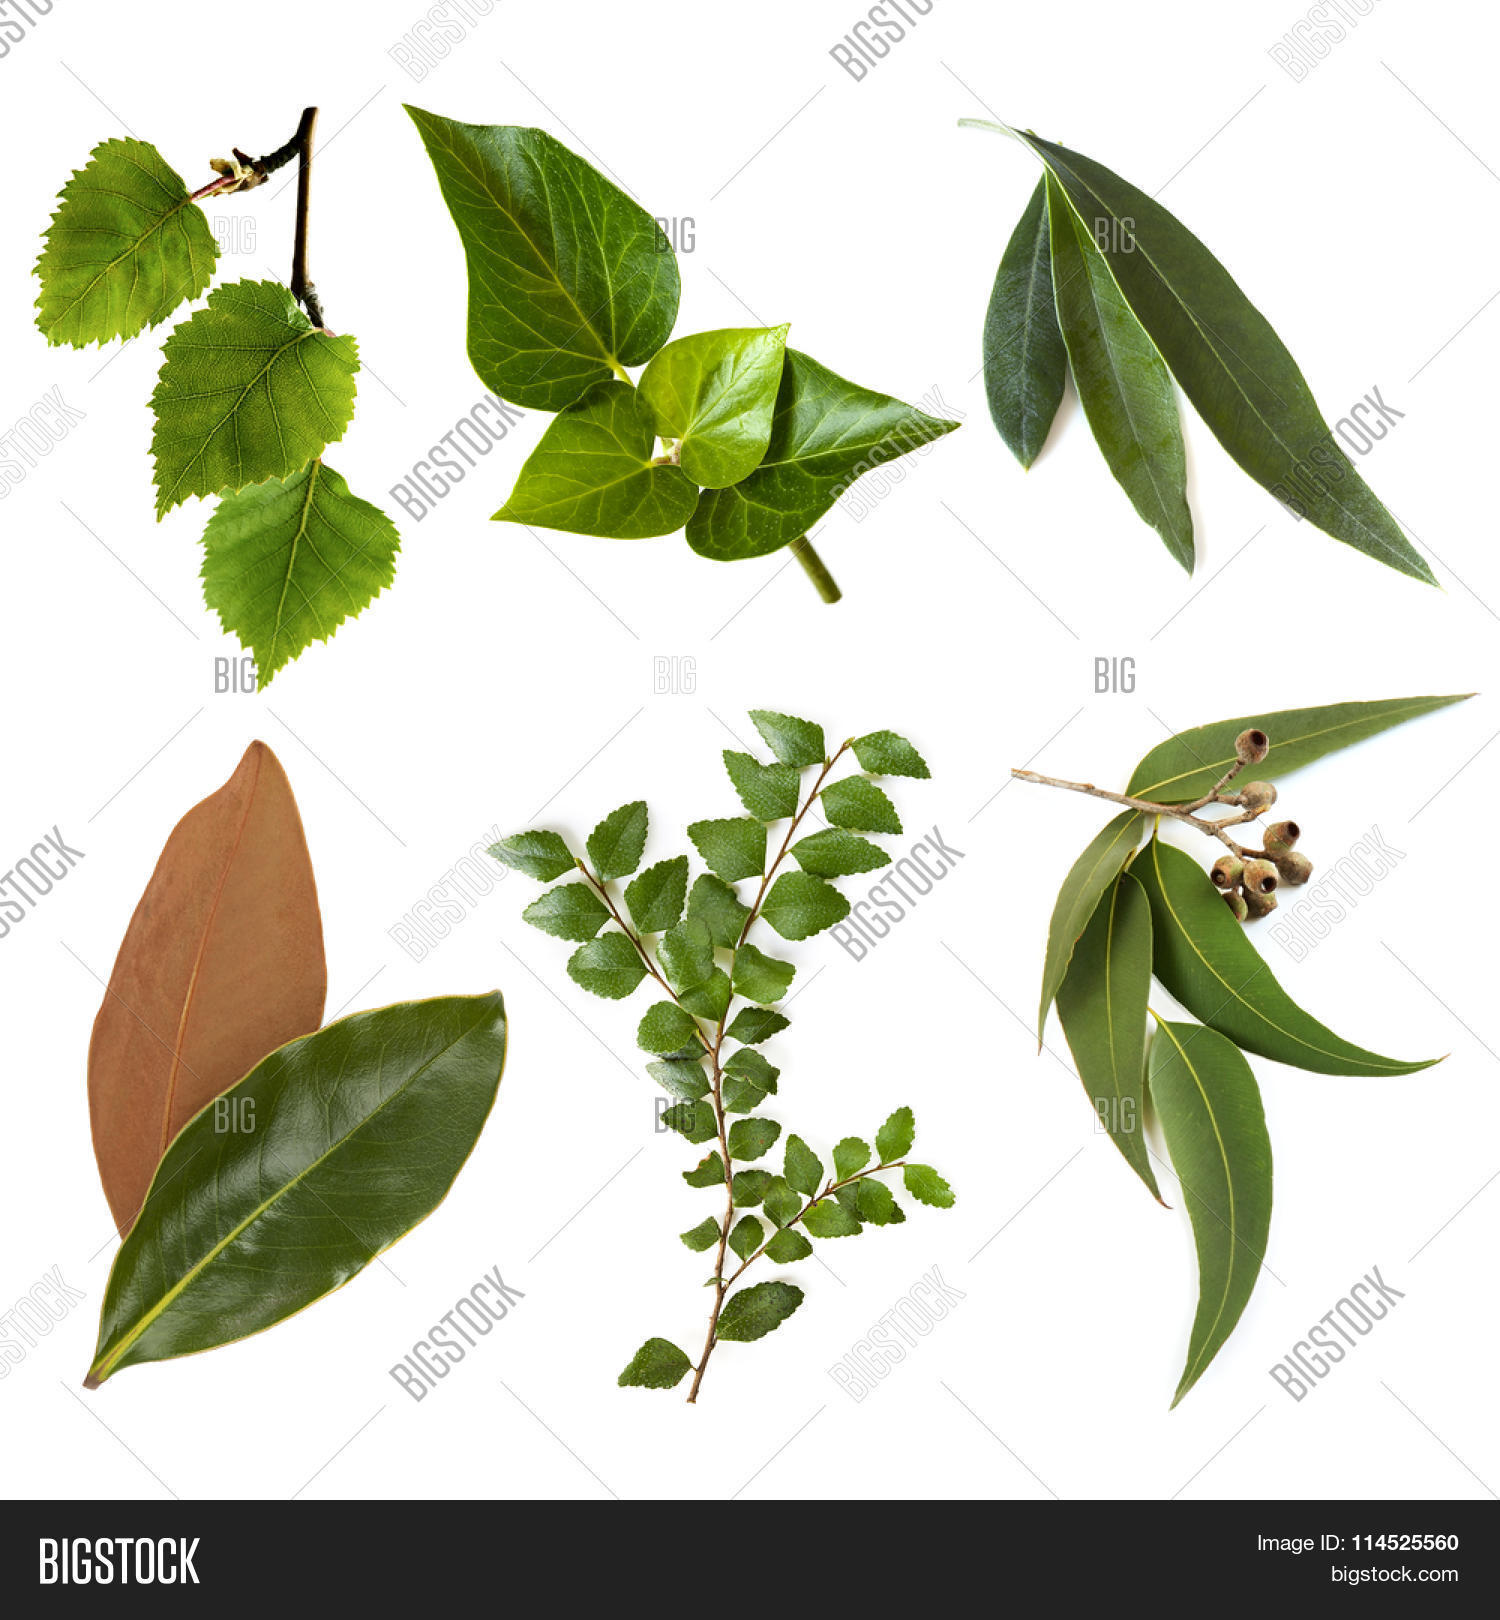 Variety Leaves, Isolated On White. Image & Photo | Bigstock